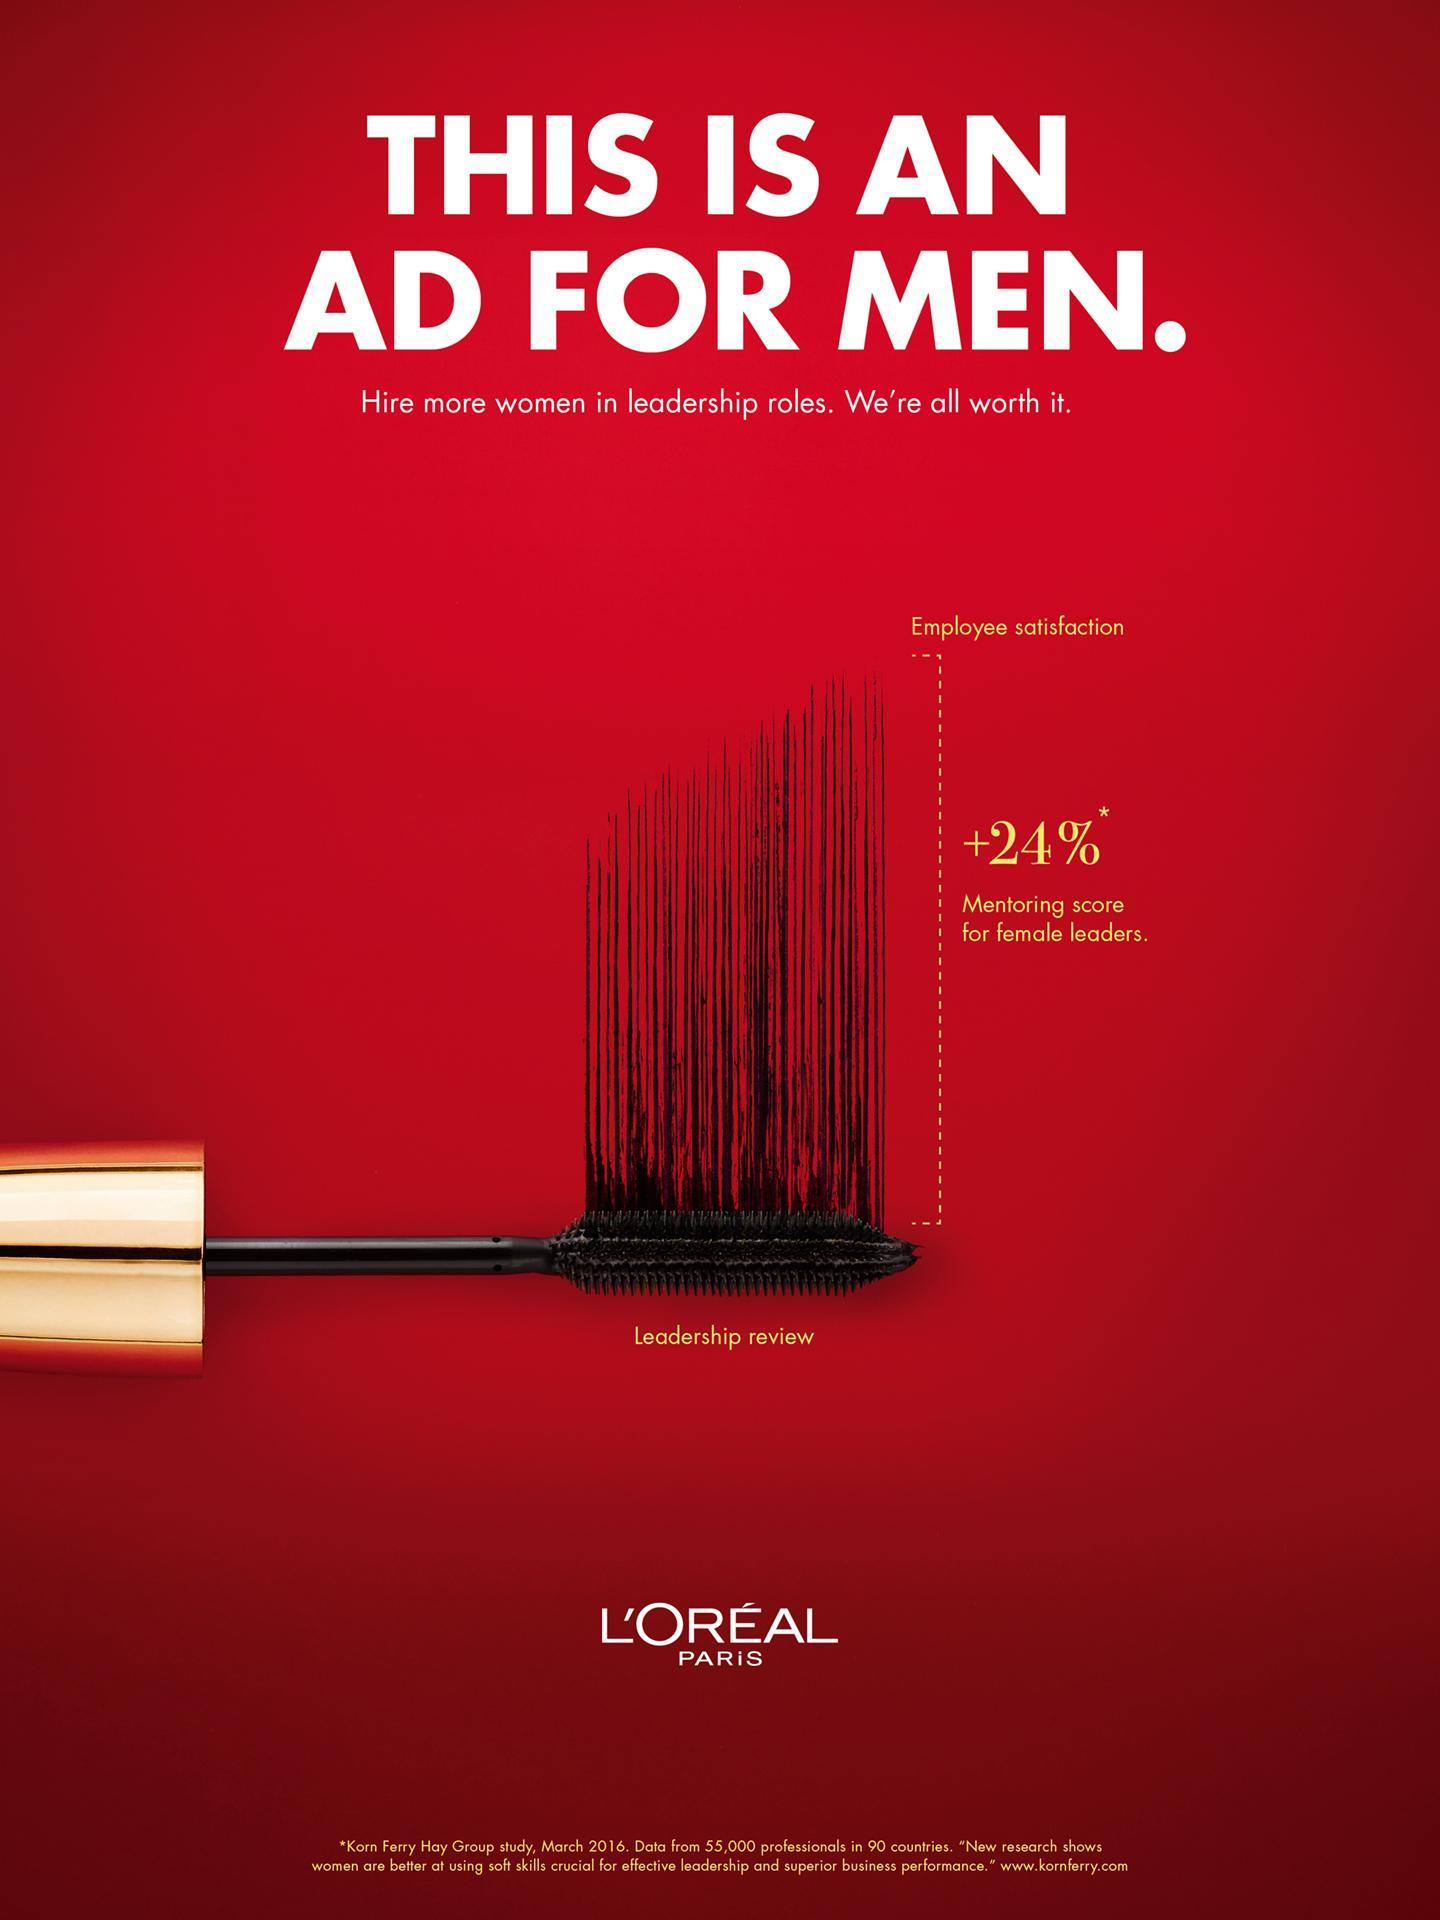 L'Oréal's 'ad for men' campaign shares why hiring female ...